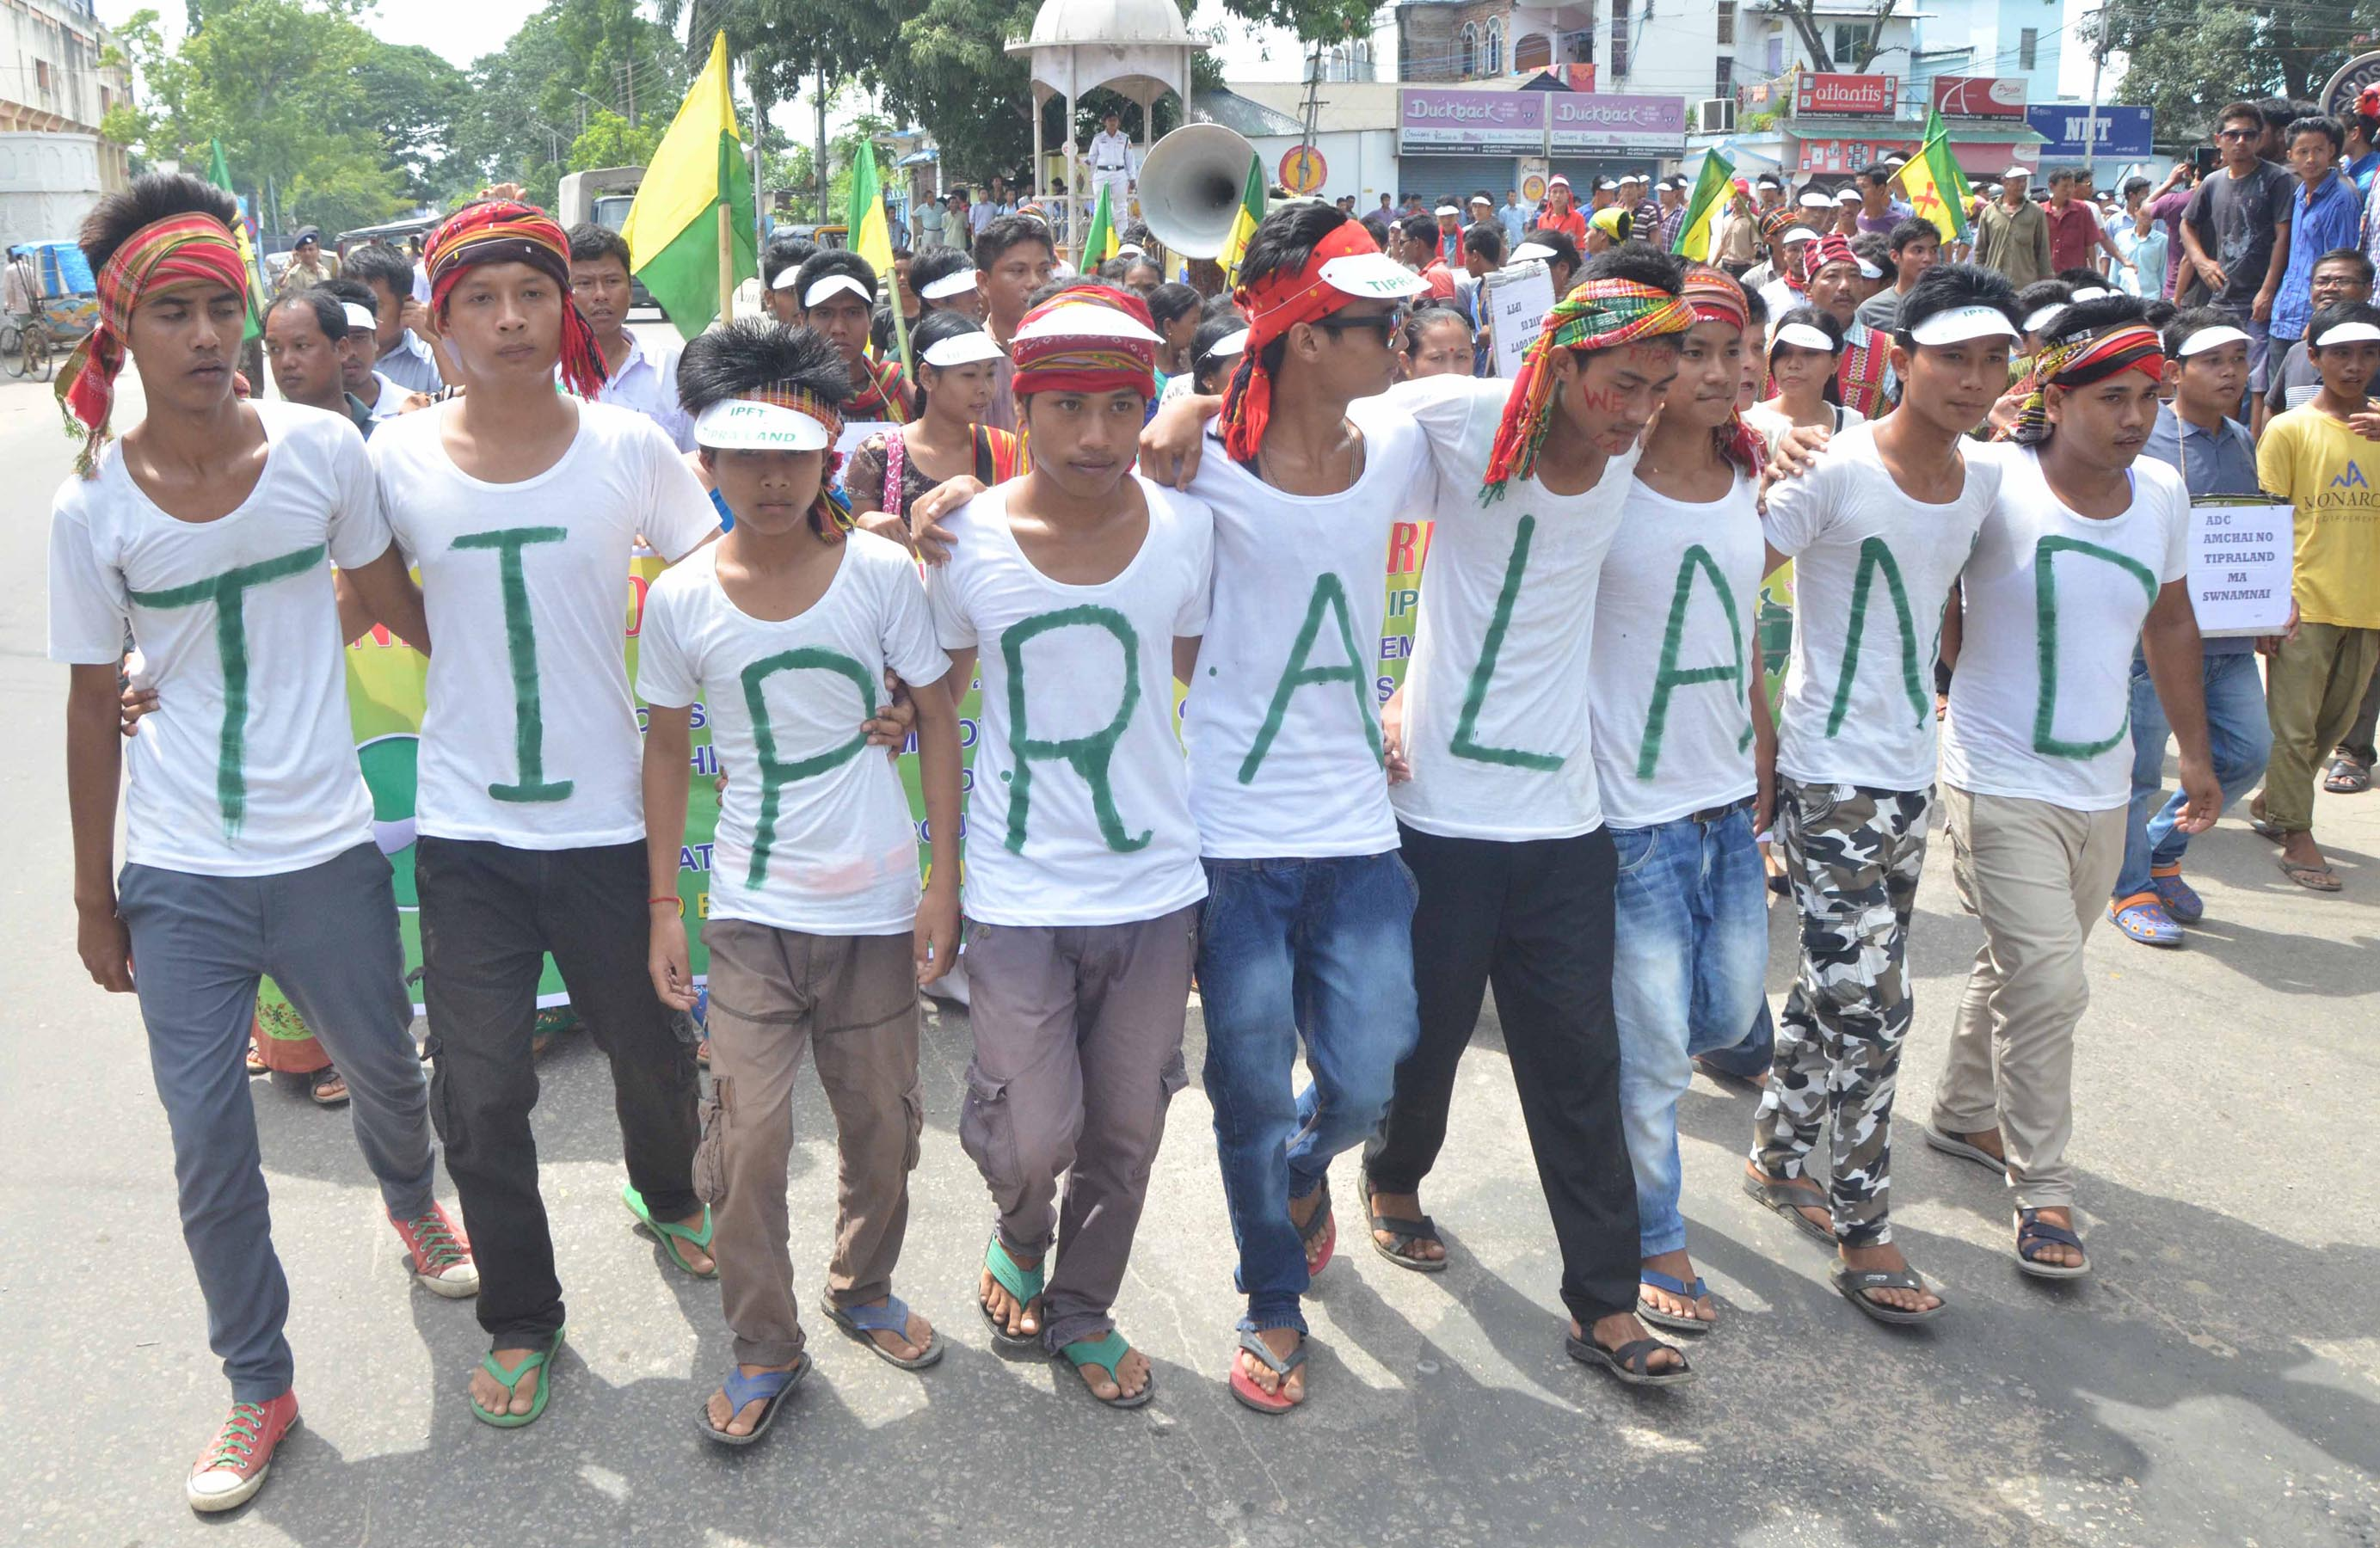 The regional IPFT party, known for the unruly behavior of his cadres, today staged another ugly show at Agartala on 23-08-15. The show in the form of procession moved through the streets of Agartala raising slogans for separate state called 'Twipra land', shouting abuses at Chief Minister Manik Sarkar and vociferously opposing any interaction between tribals and non-tribals. Pix by UB Photos